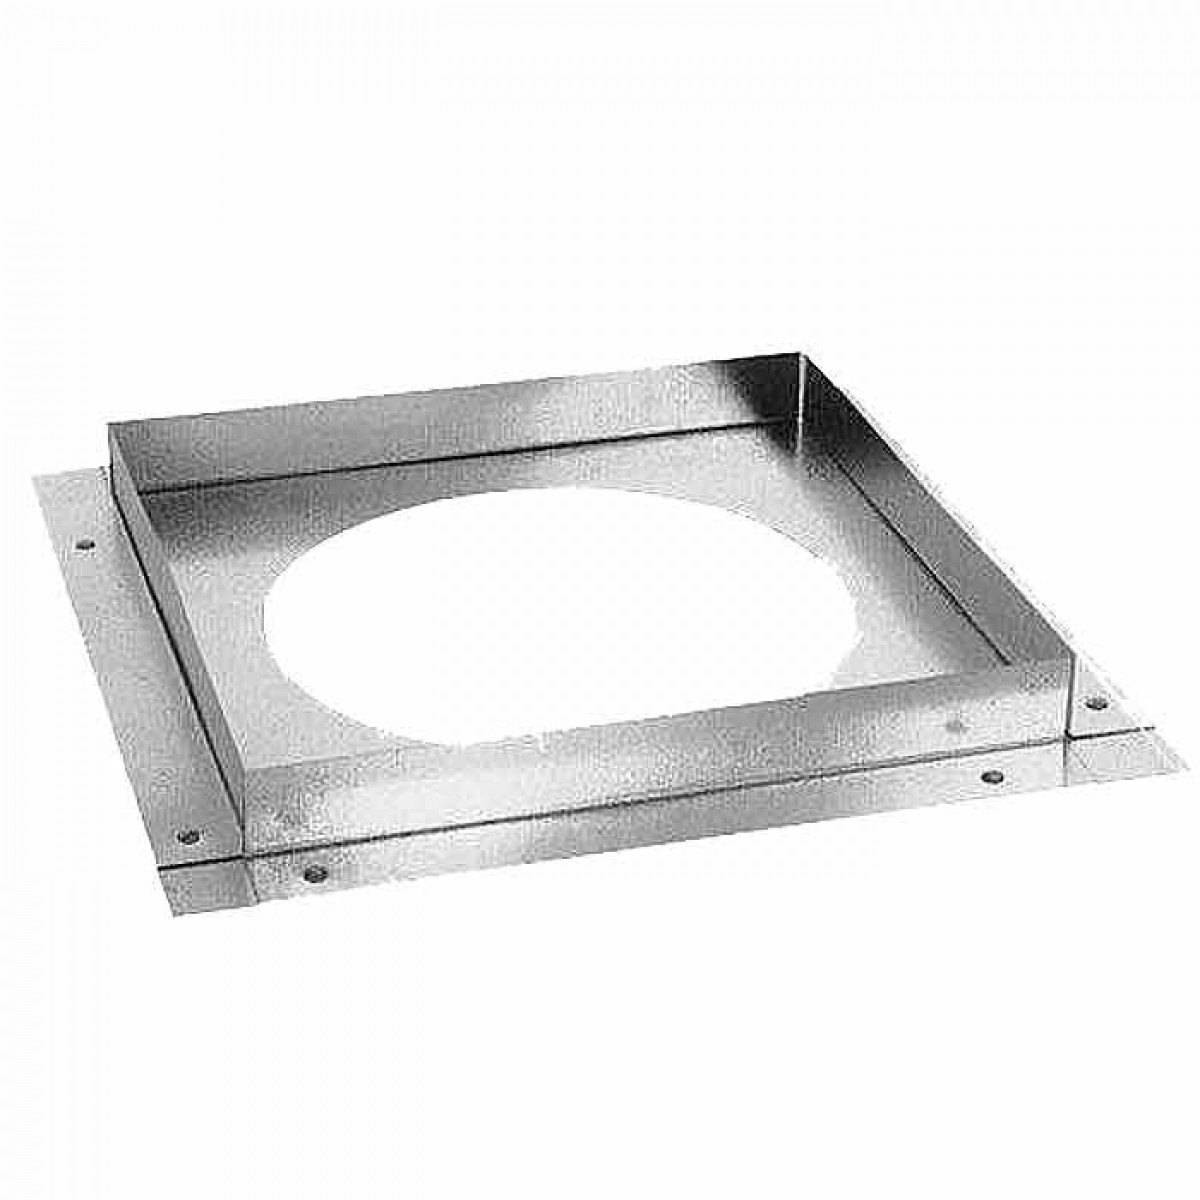 Napoleon W010 1777 Additional Firestop For Vent Sleeve